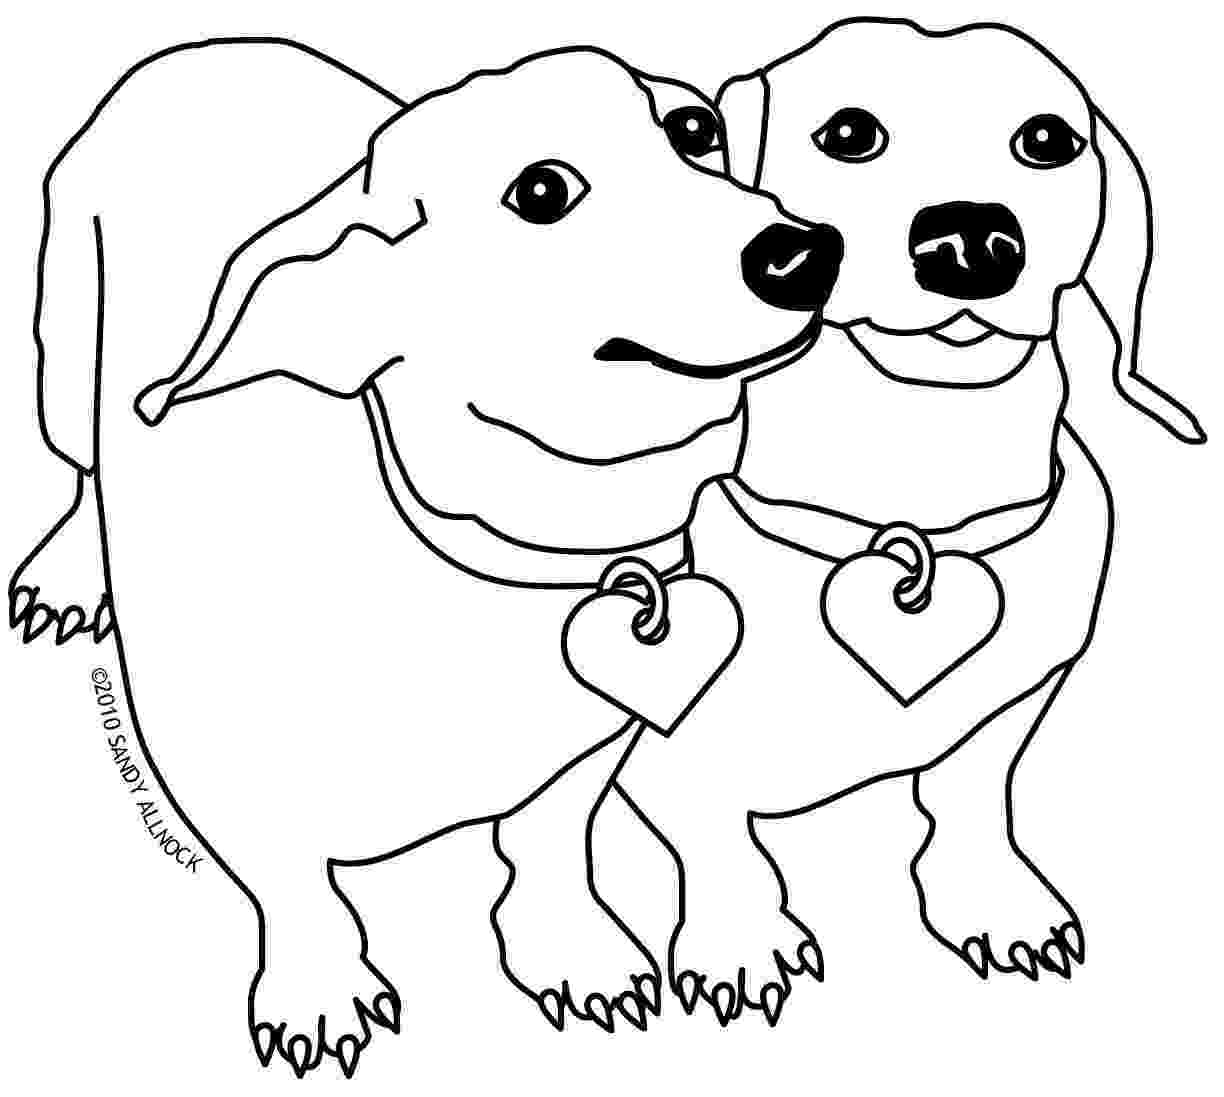 dachshund pictures to color art of dachshund single coloring page to dachshund color pictures